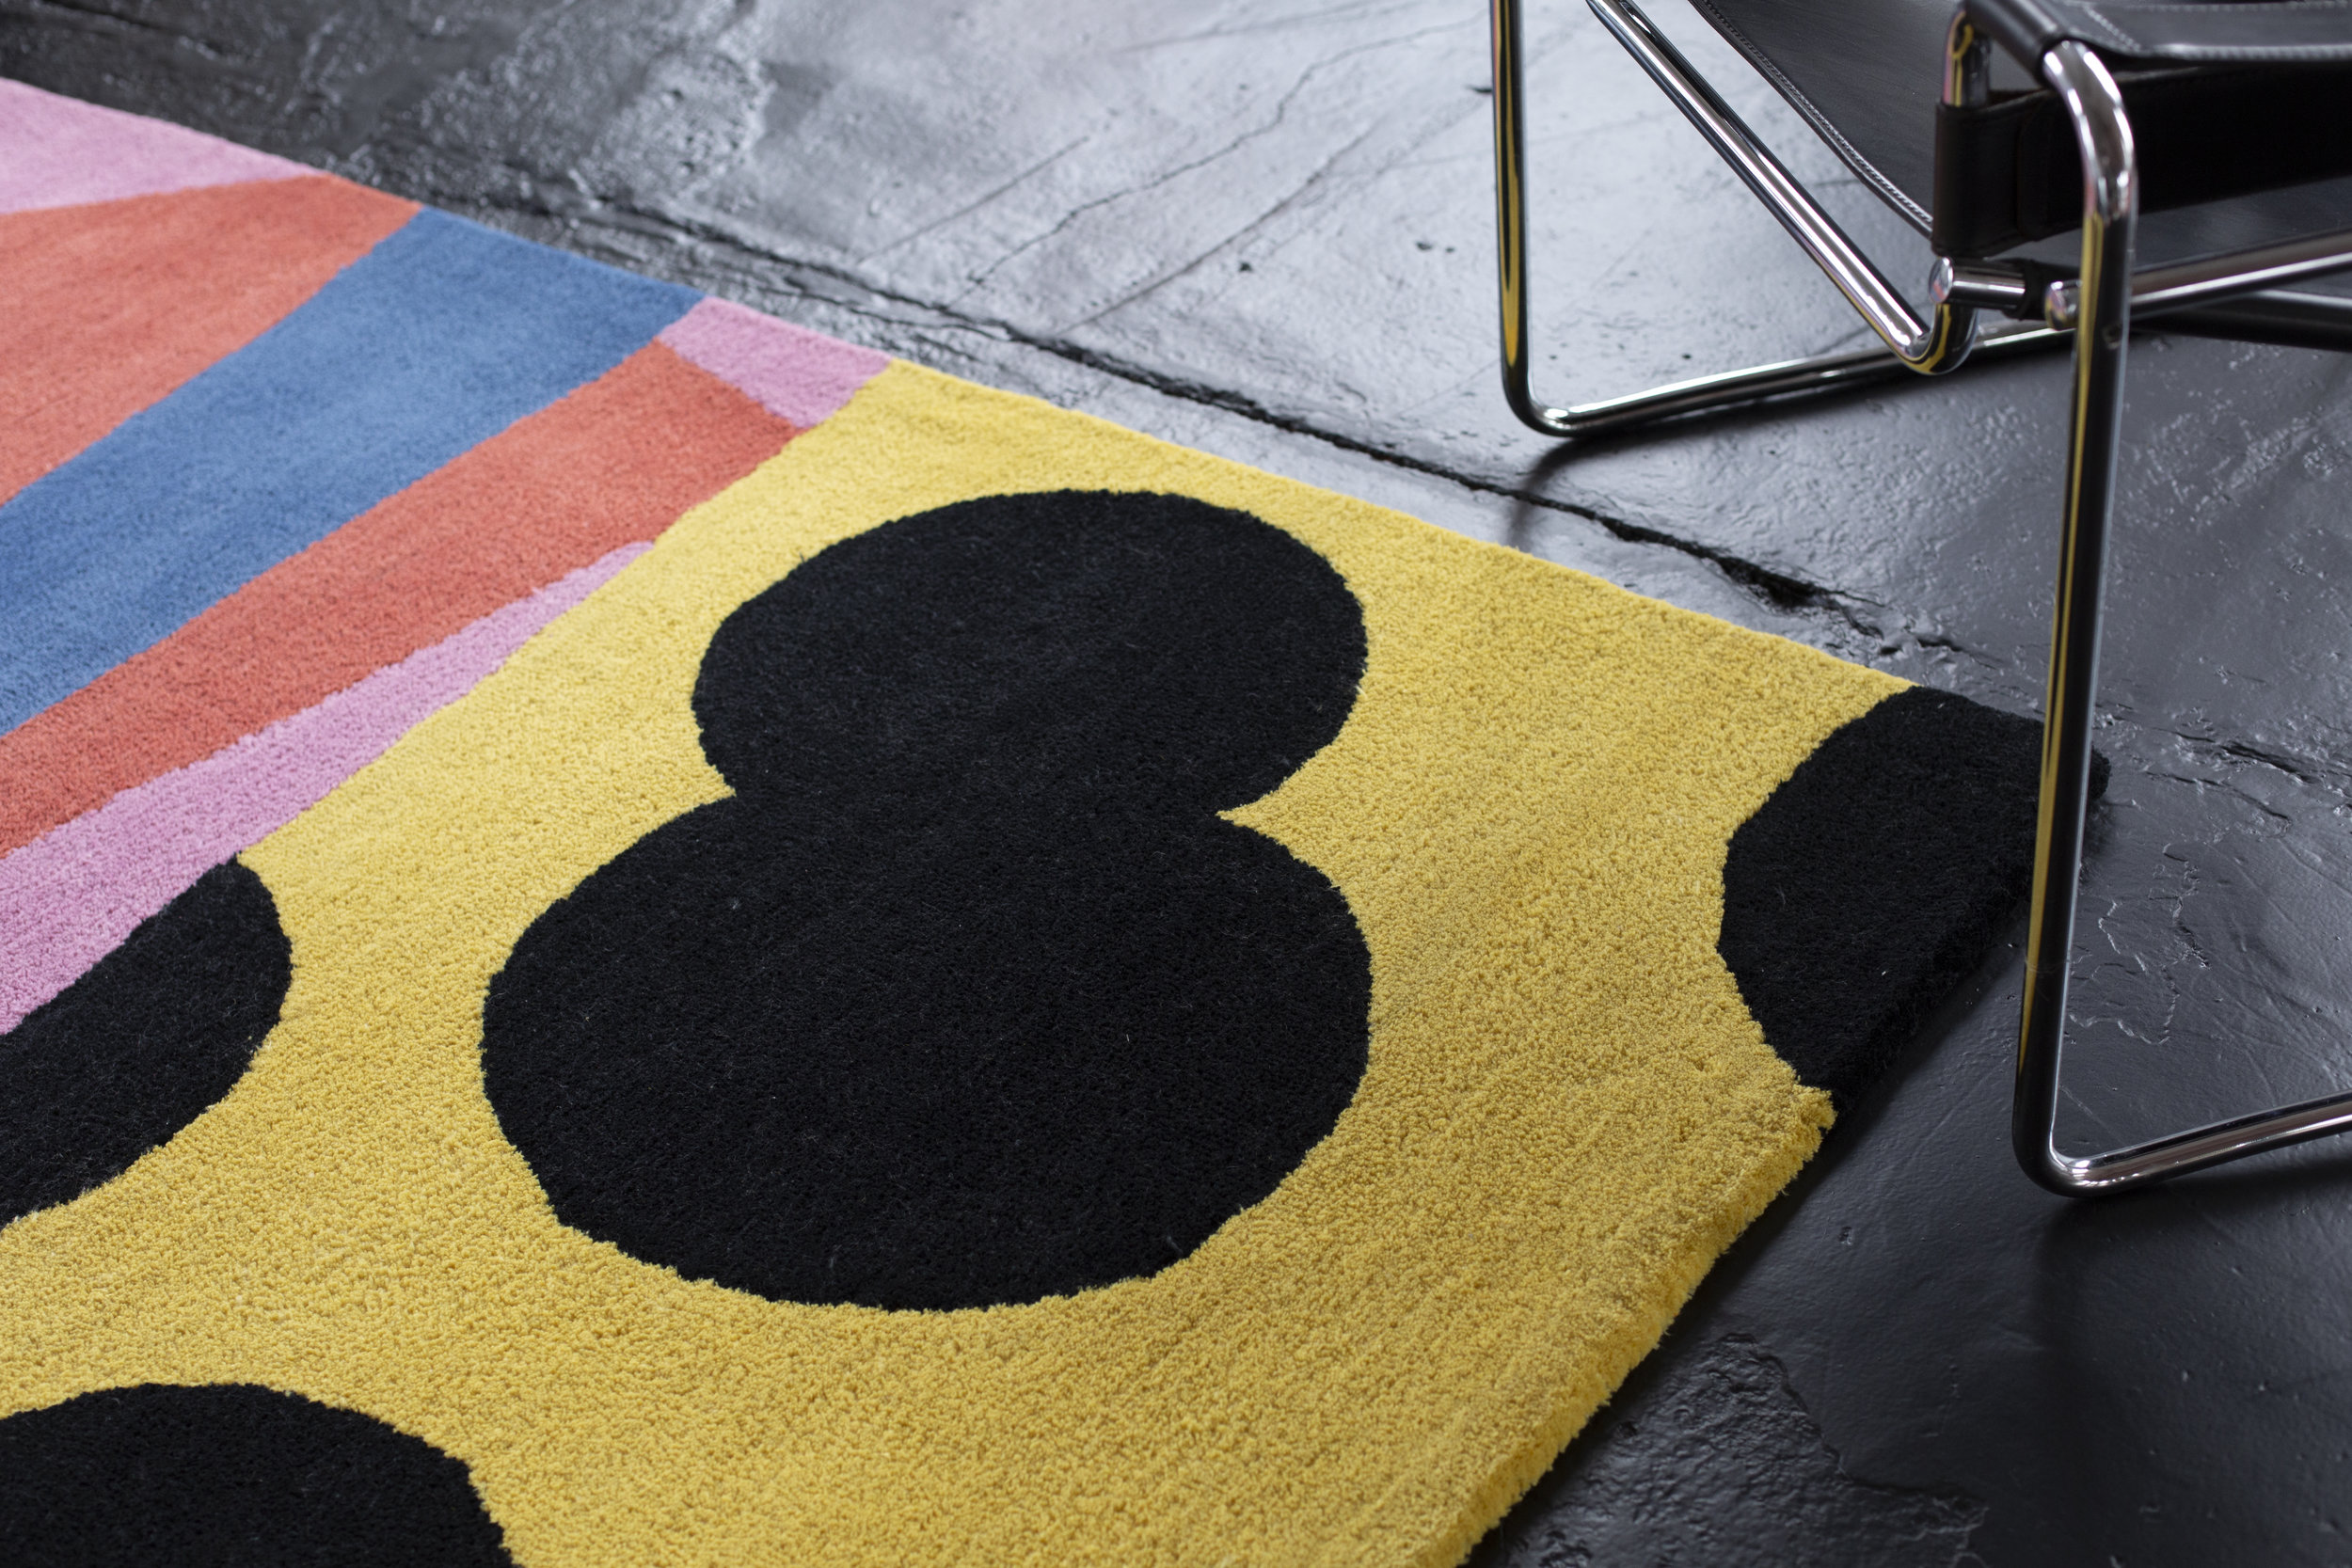 Limited edition  'Loose Ends'  P.E.T. Rugs for Knot Collective